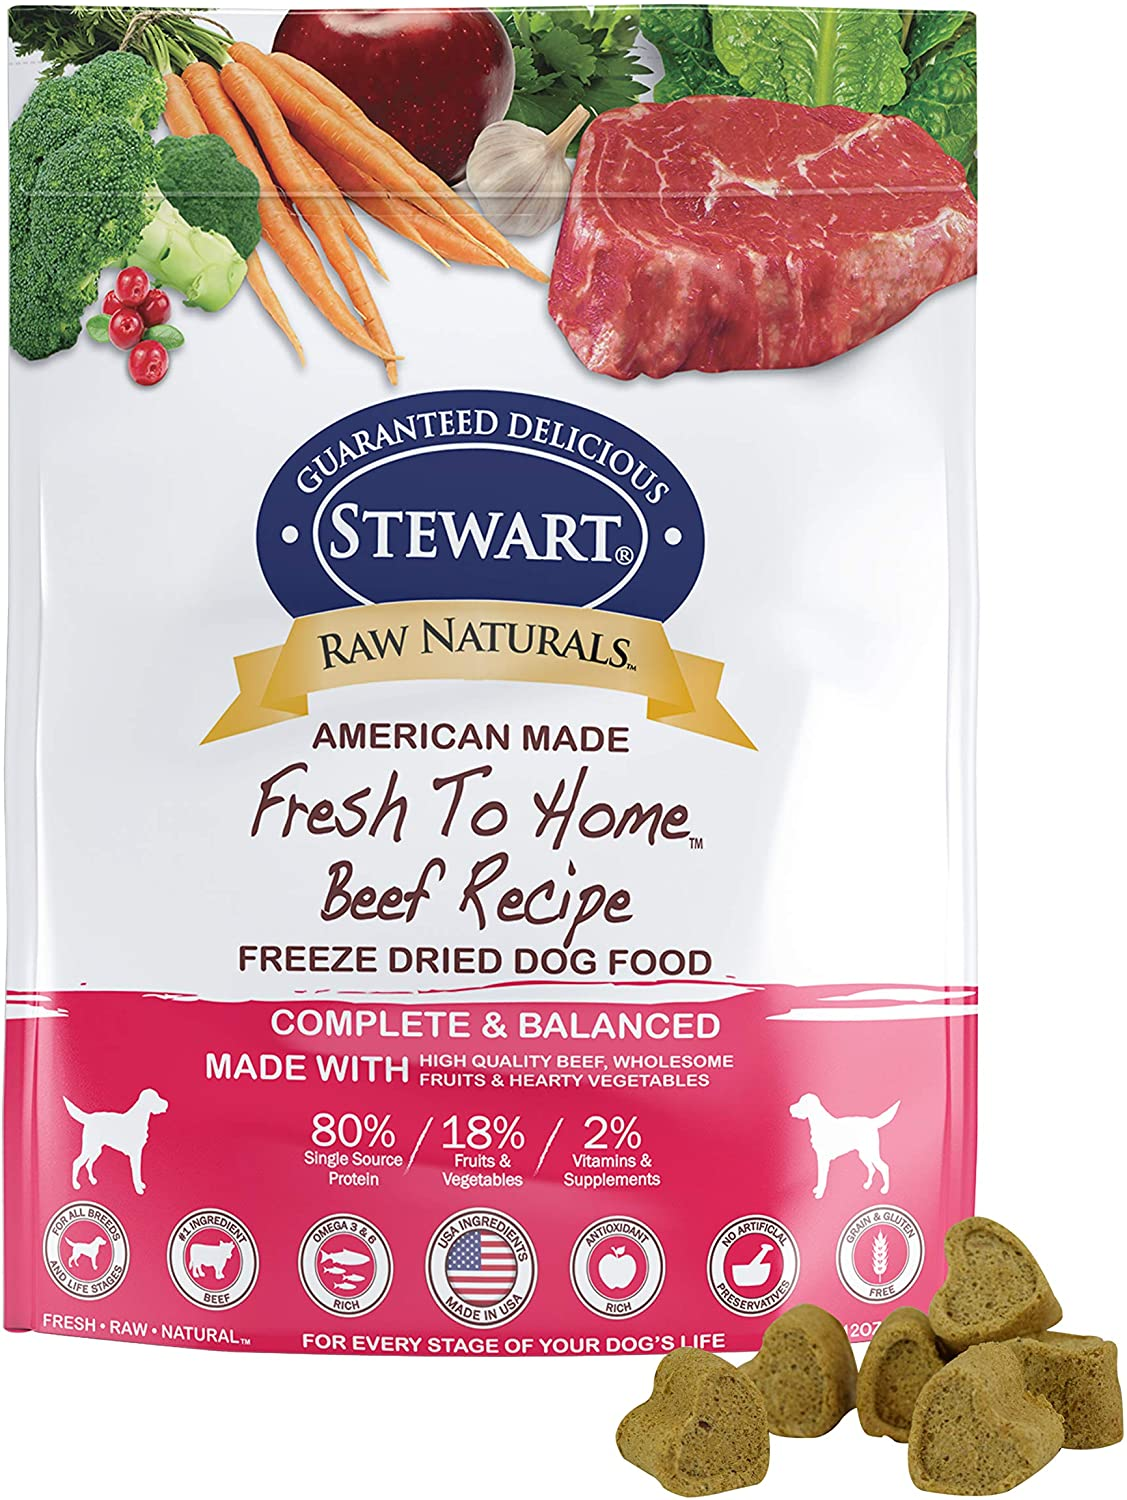 Stewart Raw Naturals Freeze Dried Dog Food Grain Free Made In Usa With Beef Fruits Vegetables For Fresh To Home All Natural Recipe 12 Oz Pet Supplies